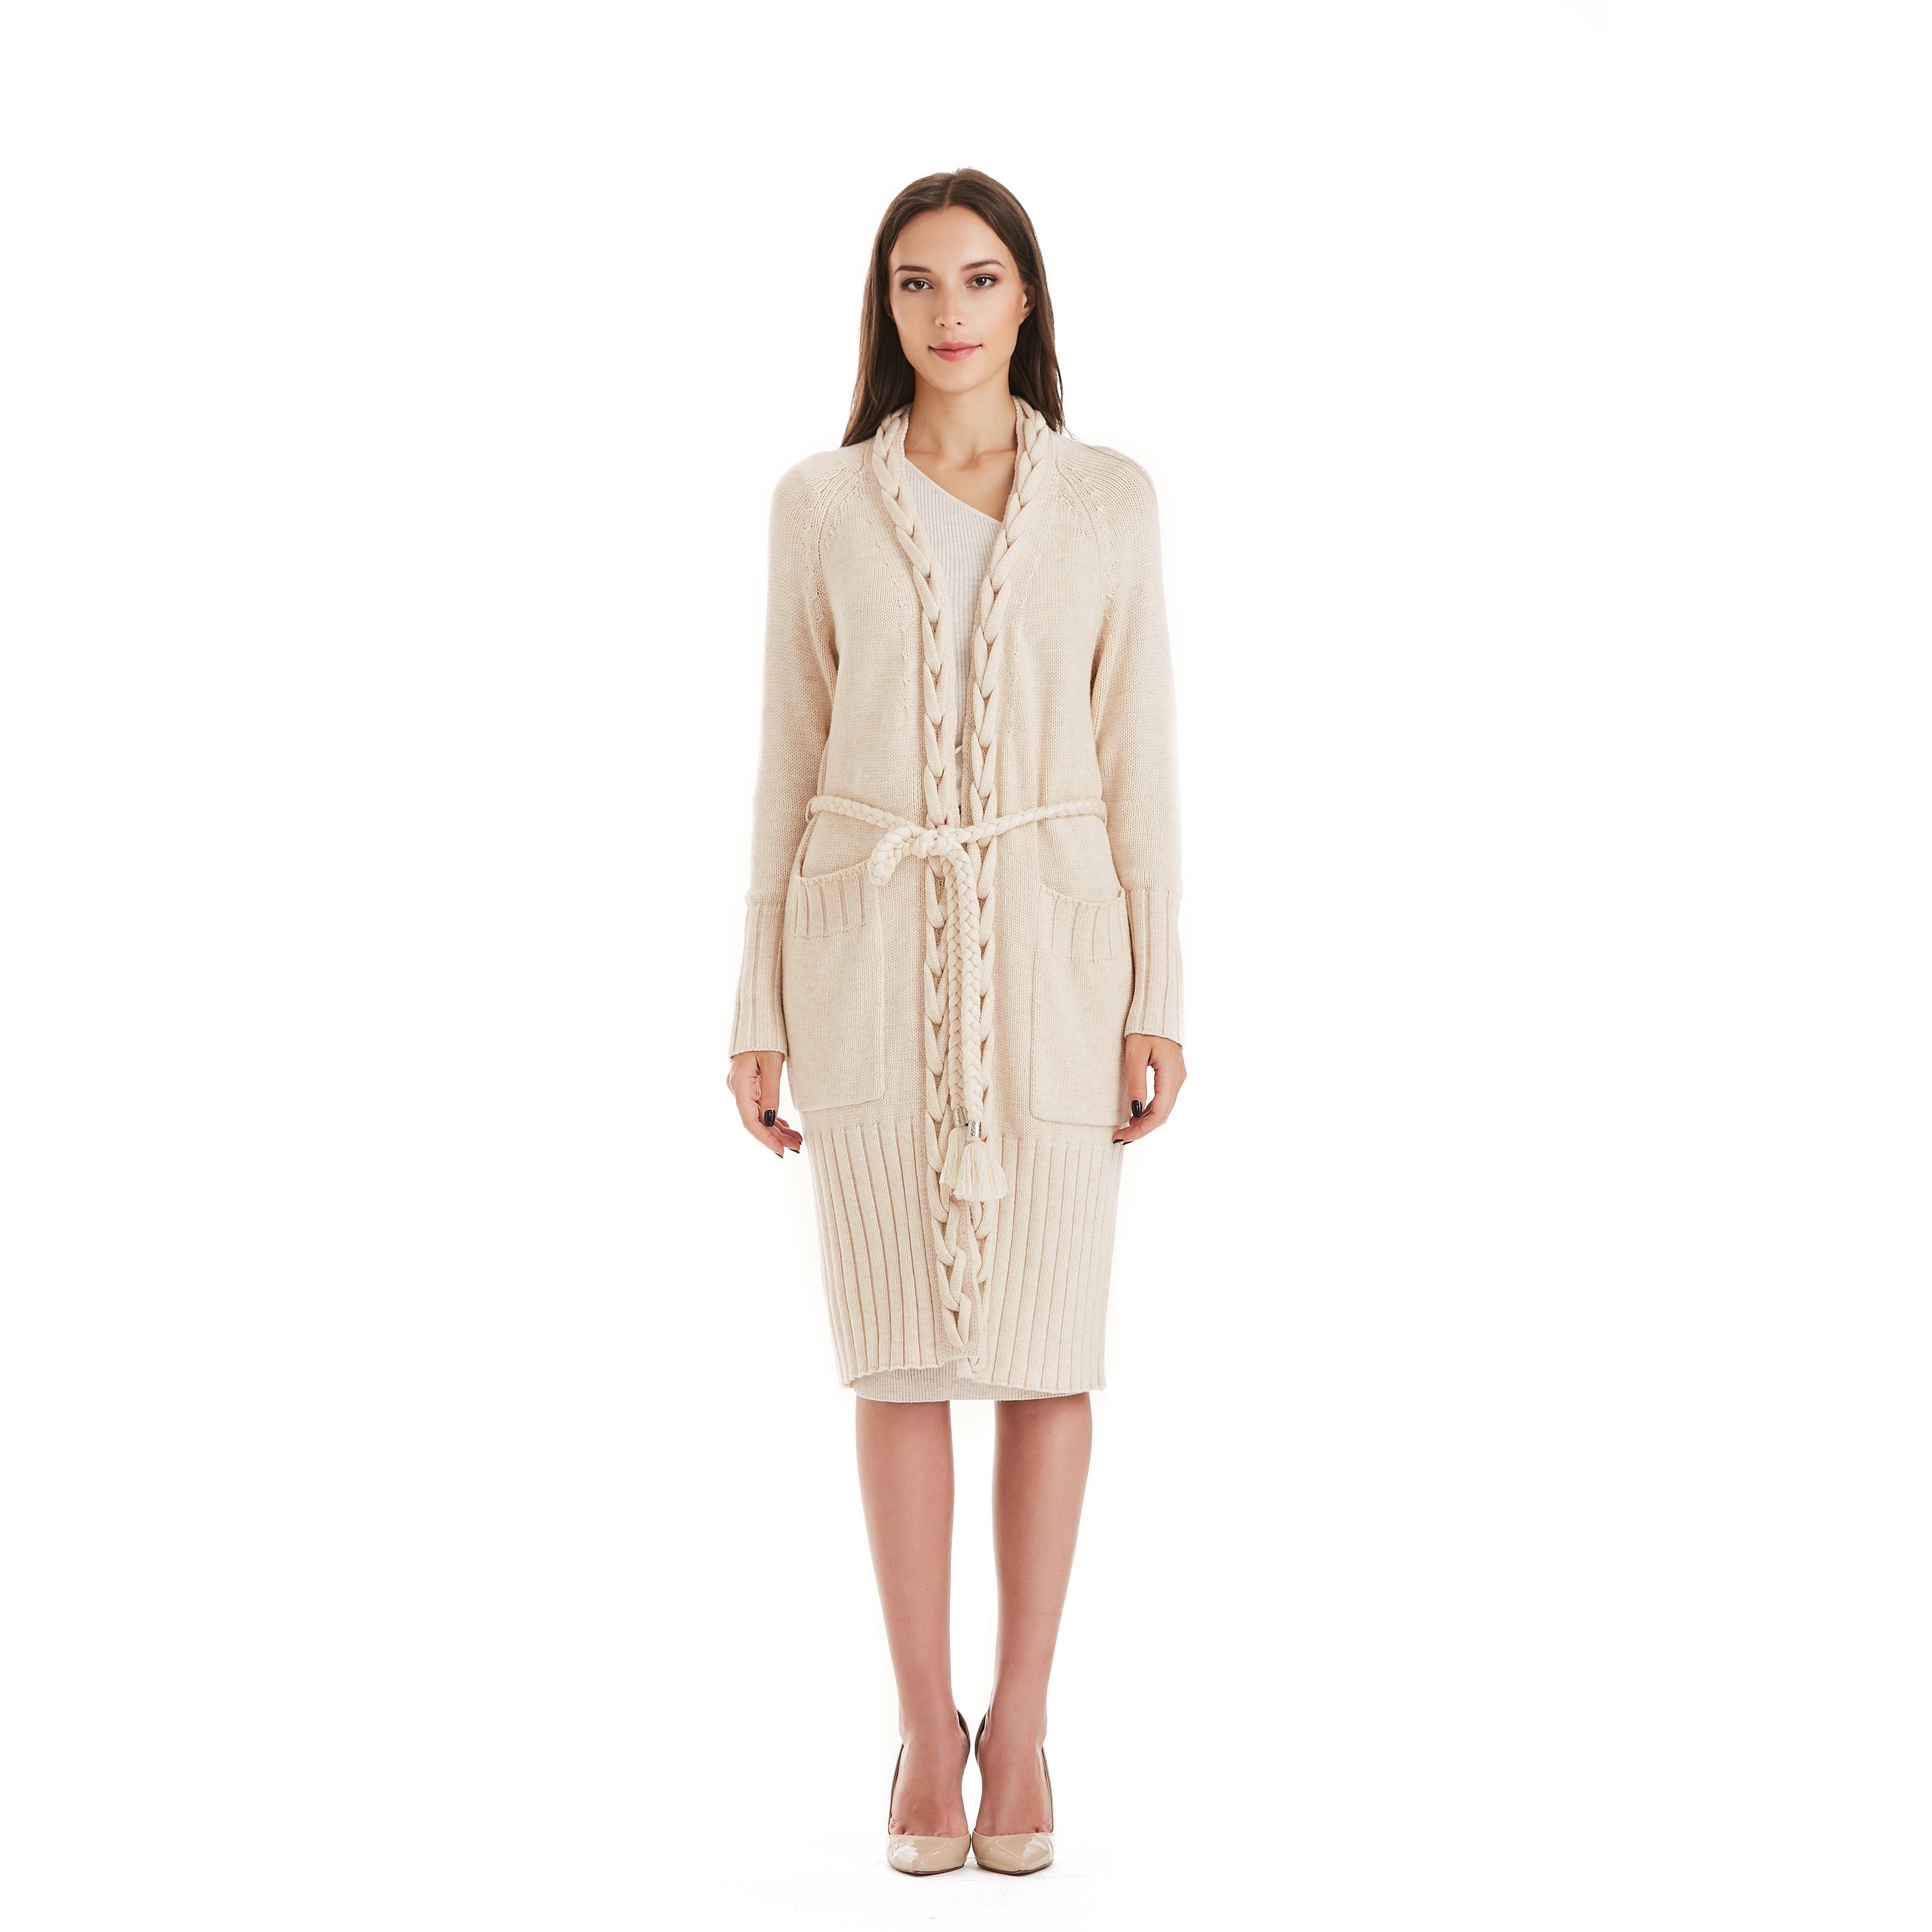 Beige Сable Kniited Cardigan With Belt-INA VOKICH-HOUSE of BOTTA